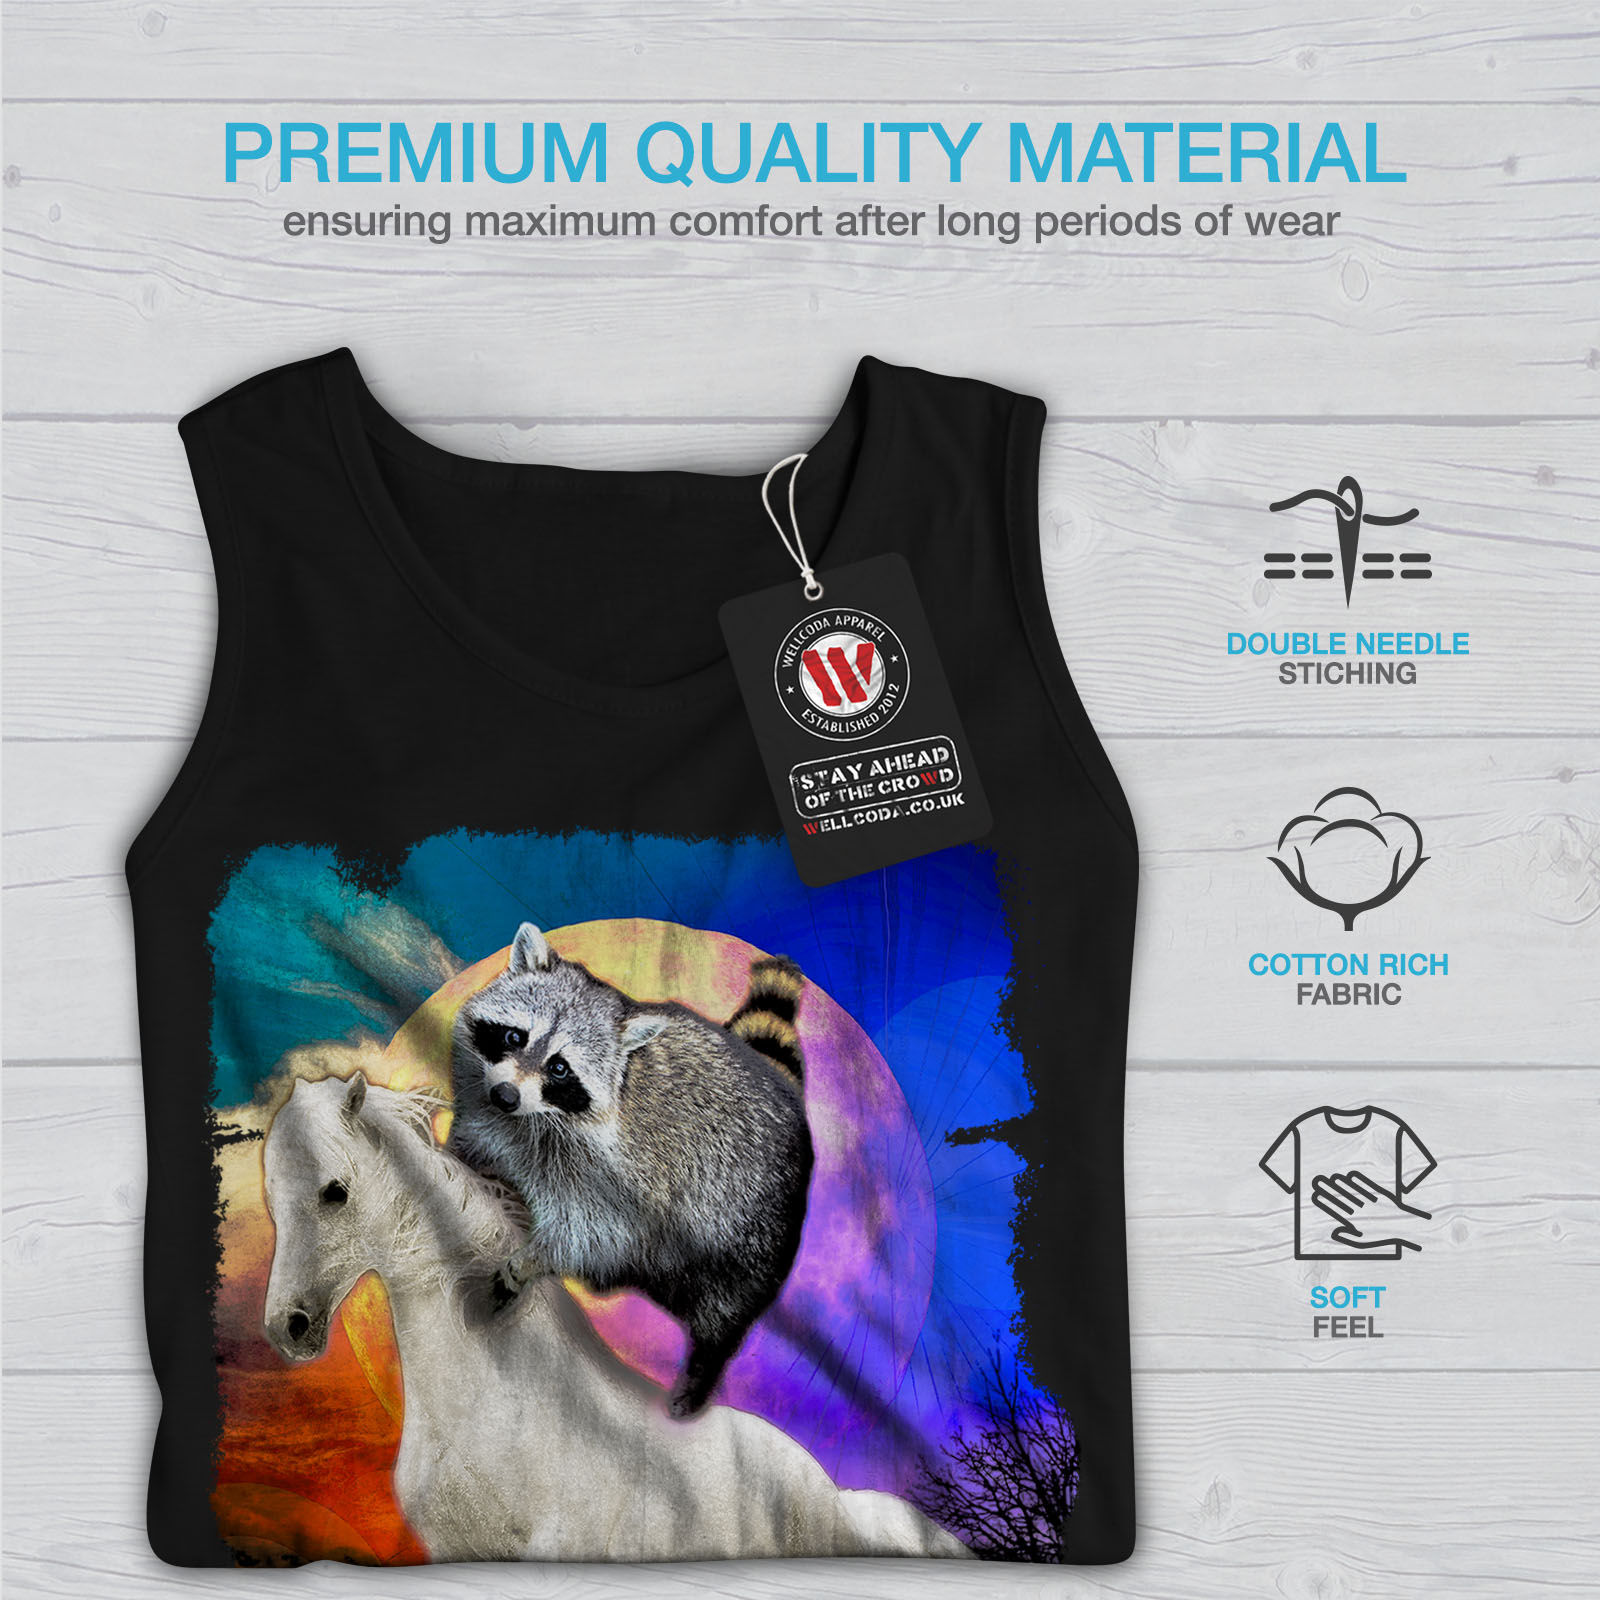 Wellcoda Horse Racoon Space Mens Tank Top Cool Active Sports Shirt